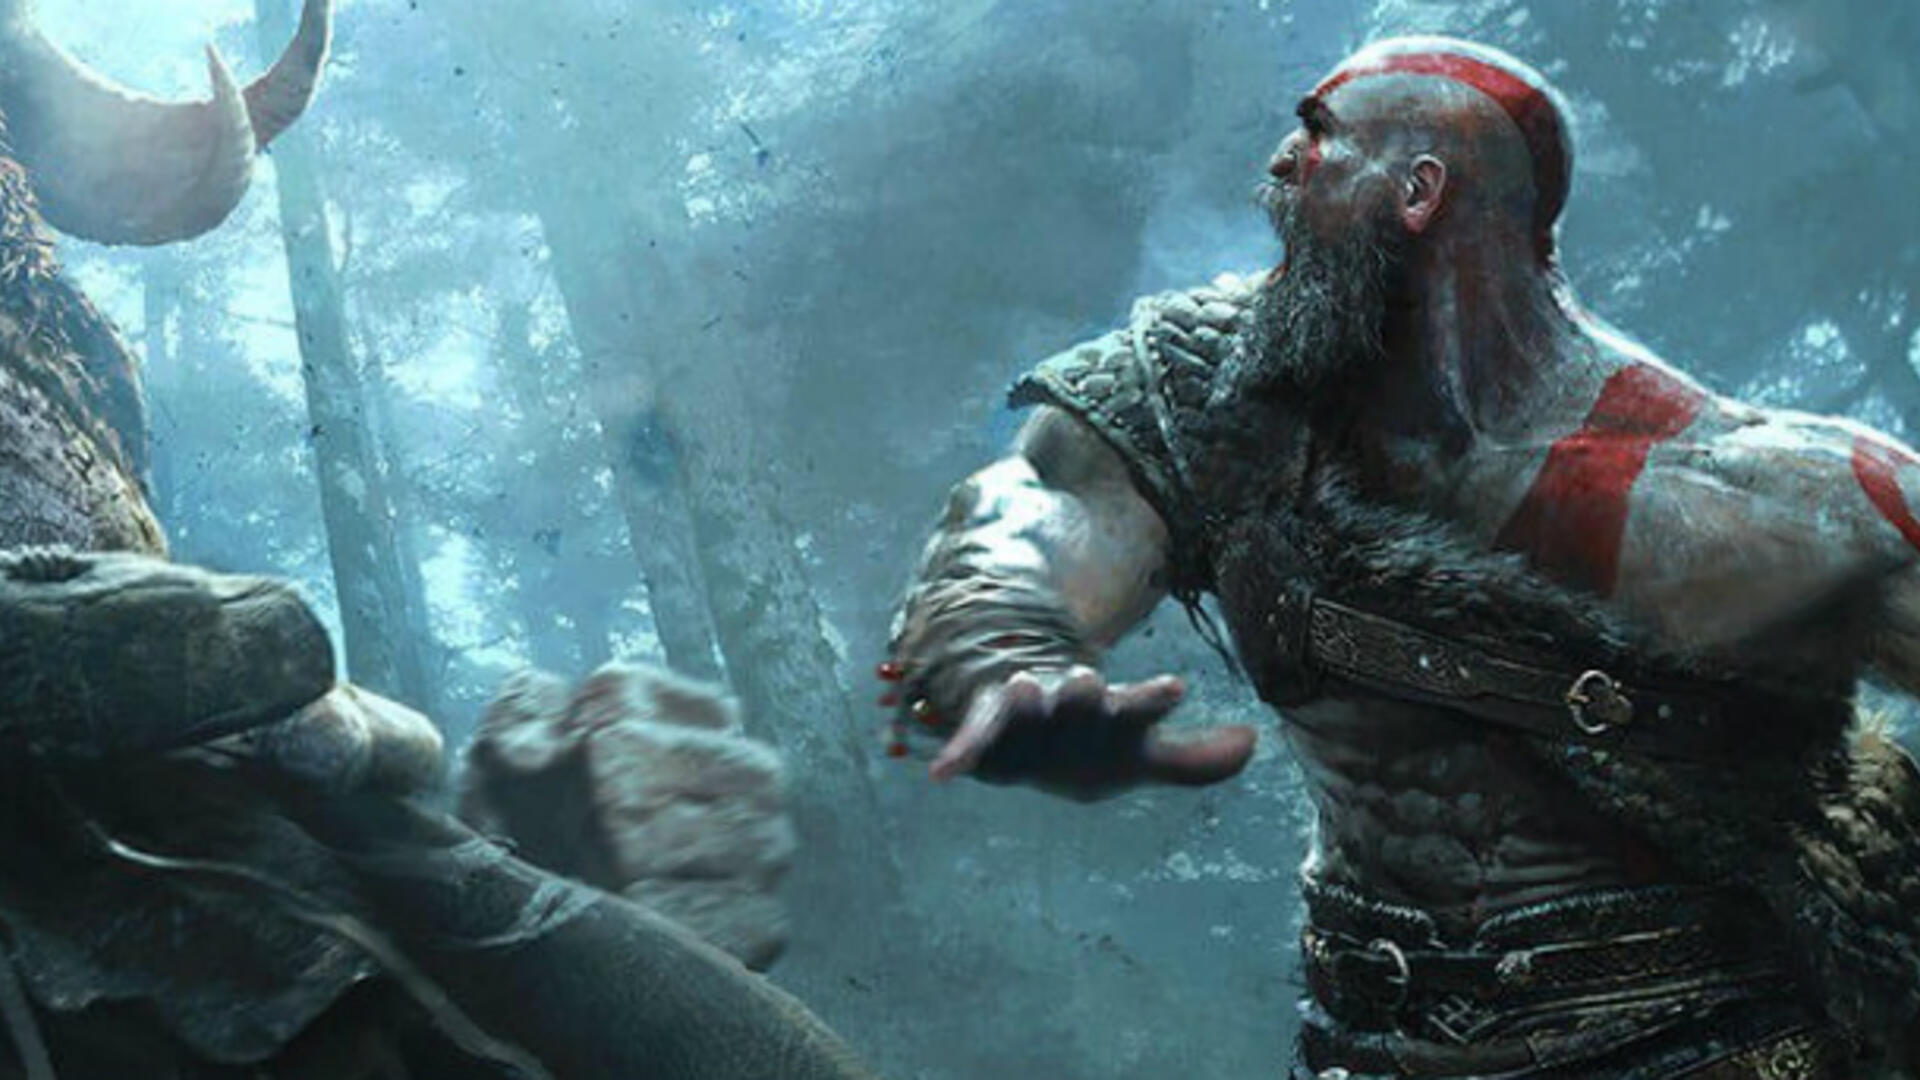 God of War's Strong Reviews Complete Sony Santa Monica's Return From the Brink